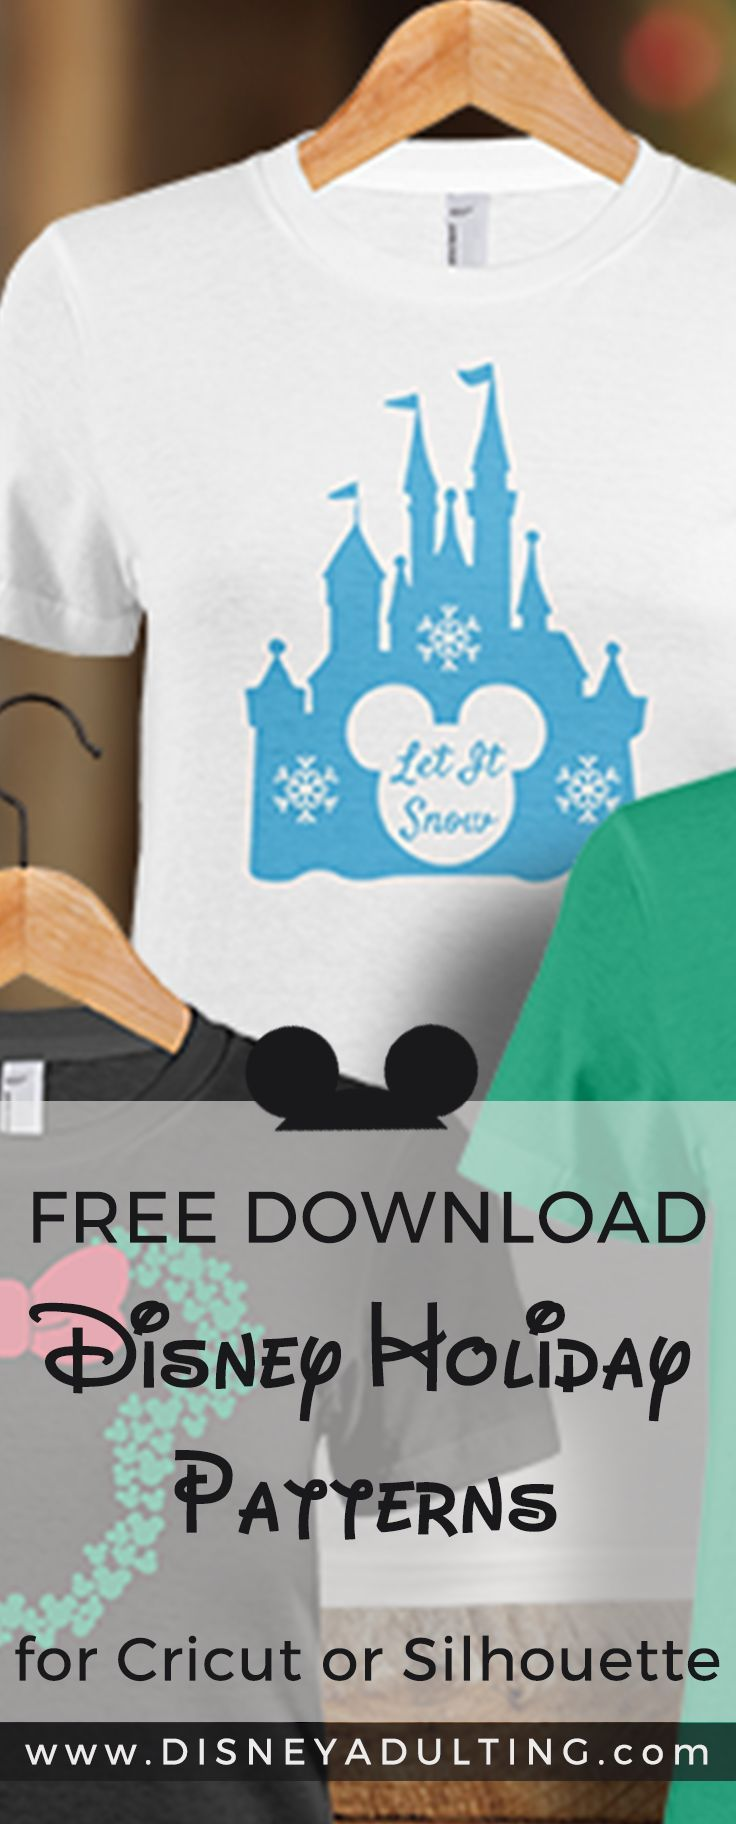 Diy Disney Shirts With Disney Holiday Patterns For Cricut Or